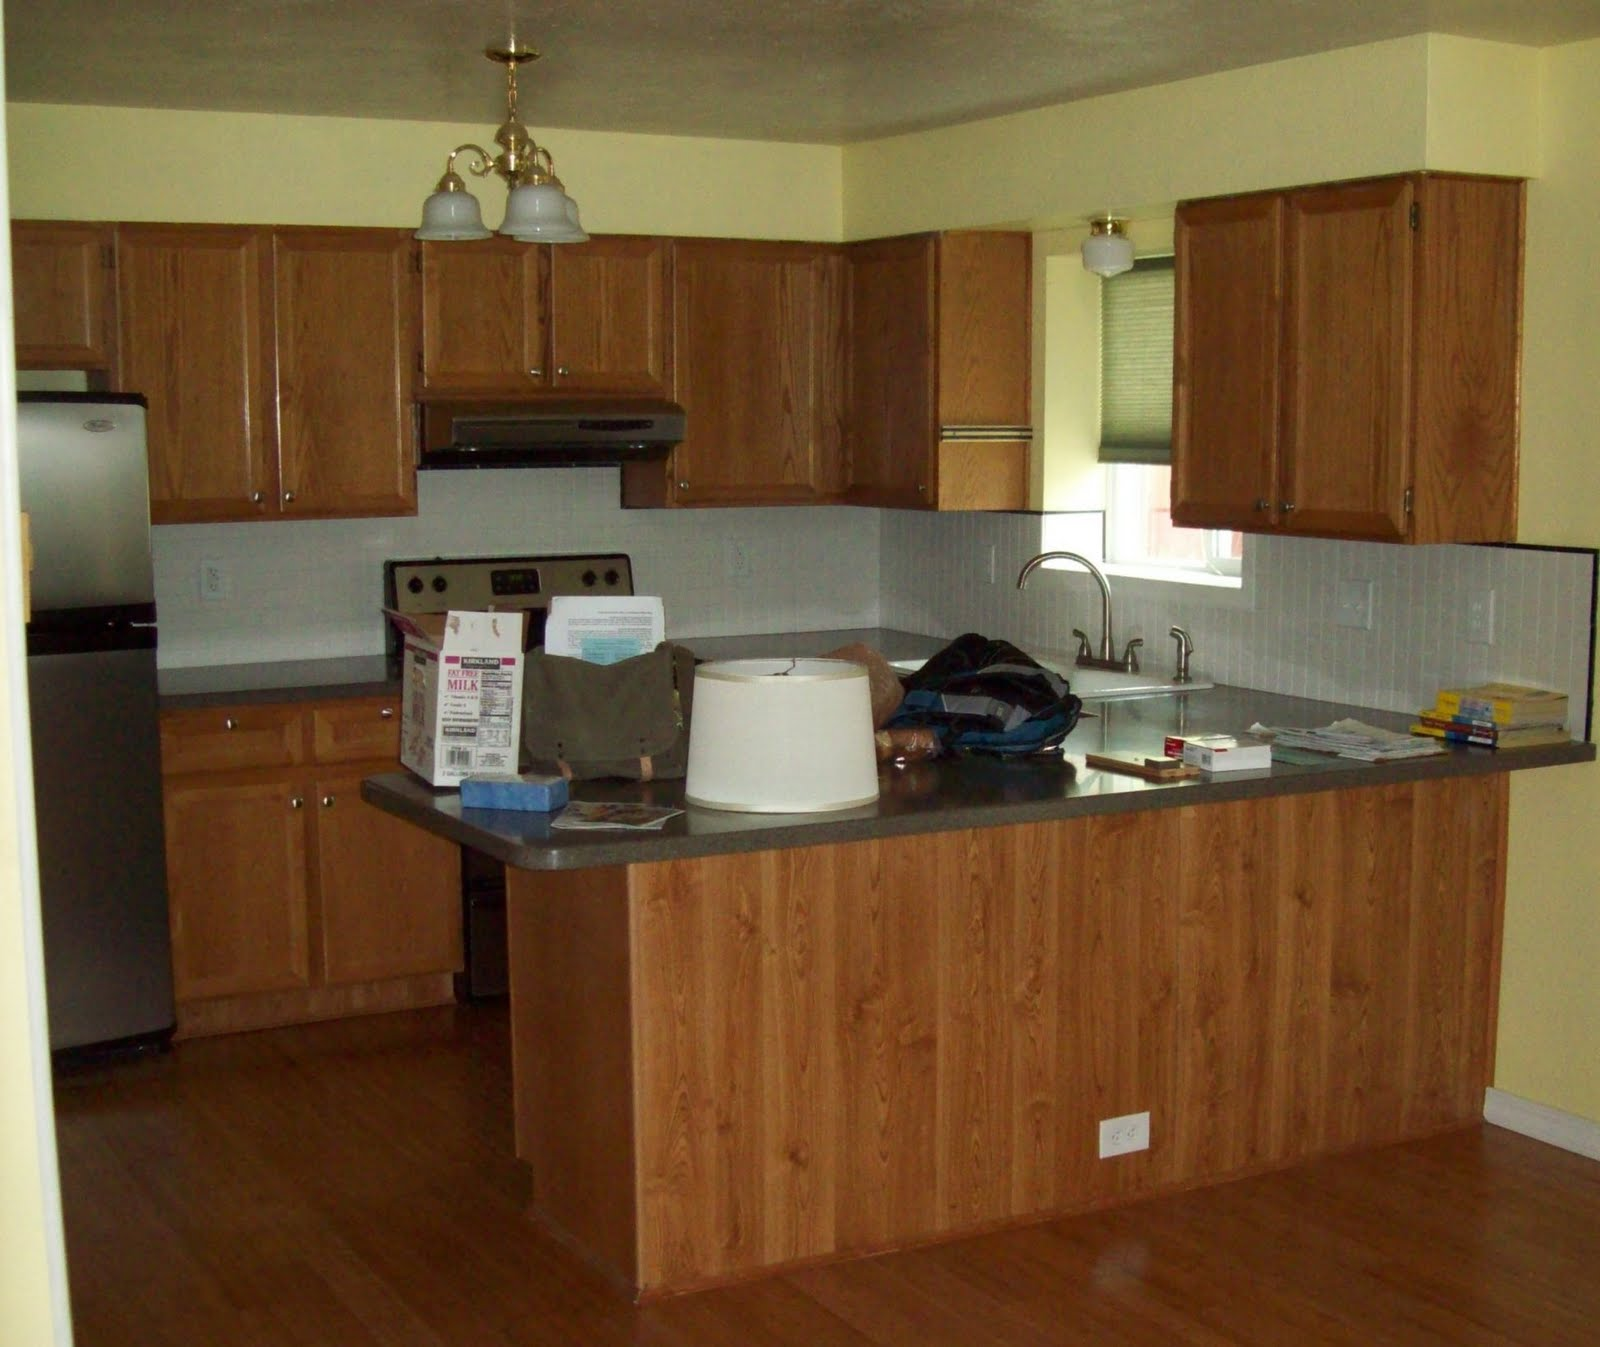 how to paint your kitchen cabinets painting kitchen cabinets How To Paint Your Kitchen Cabinets